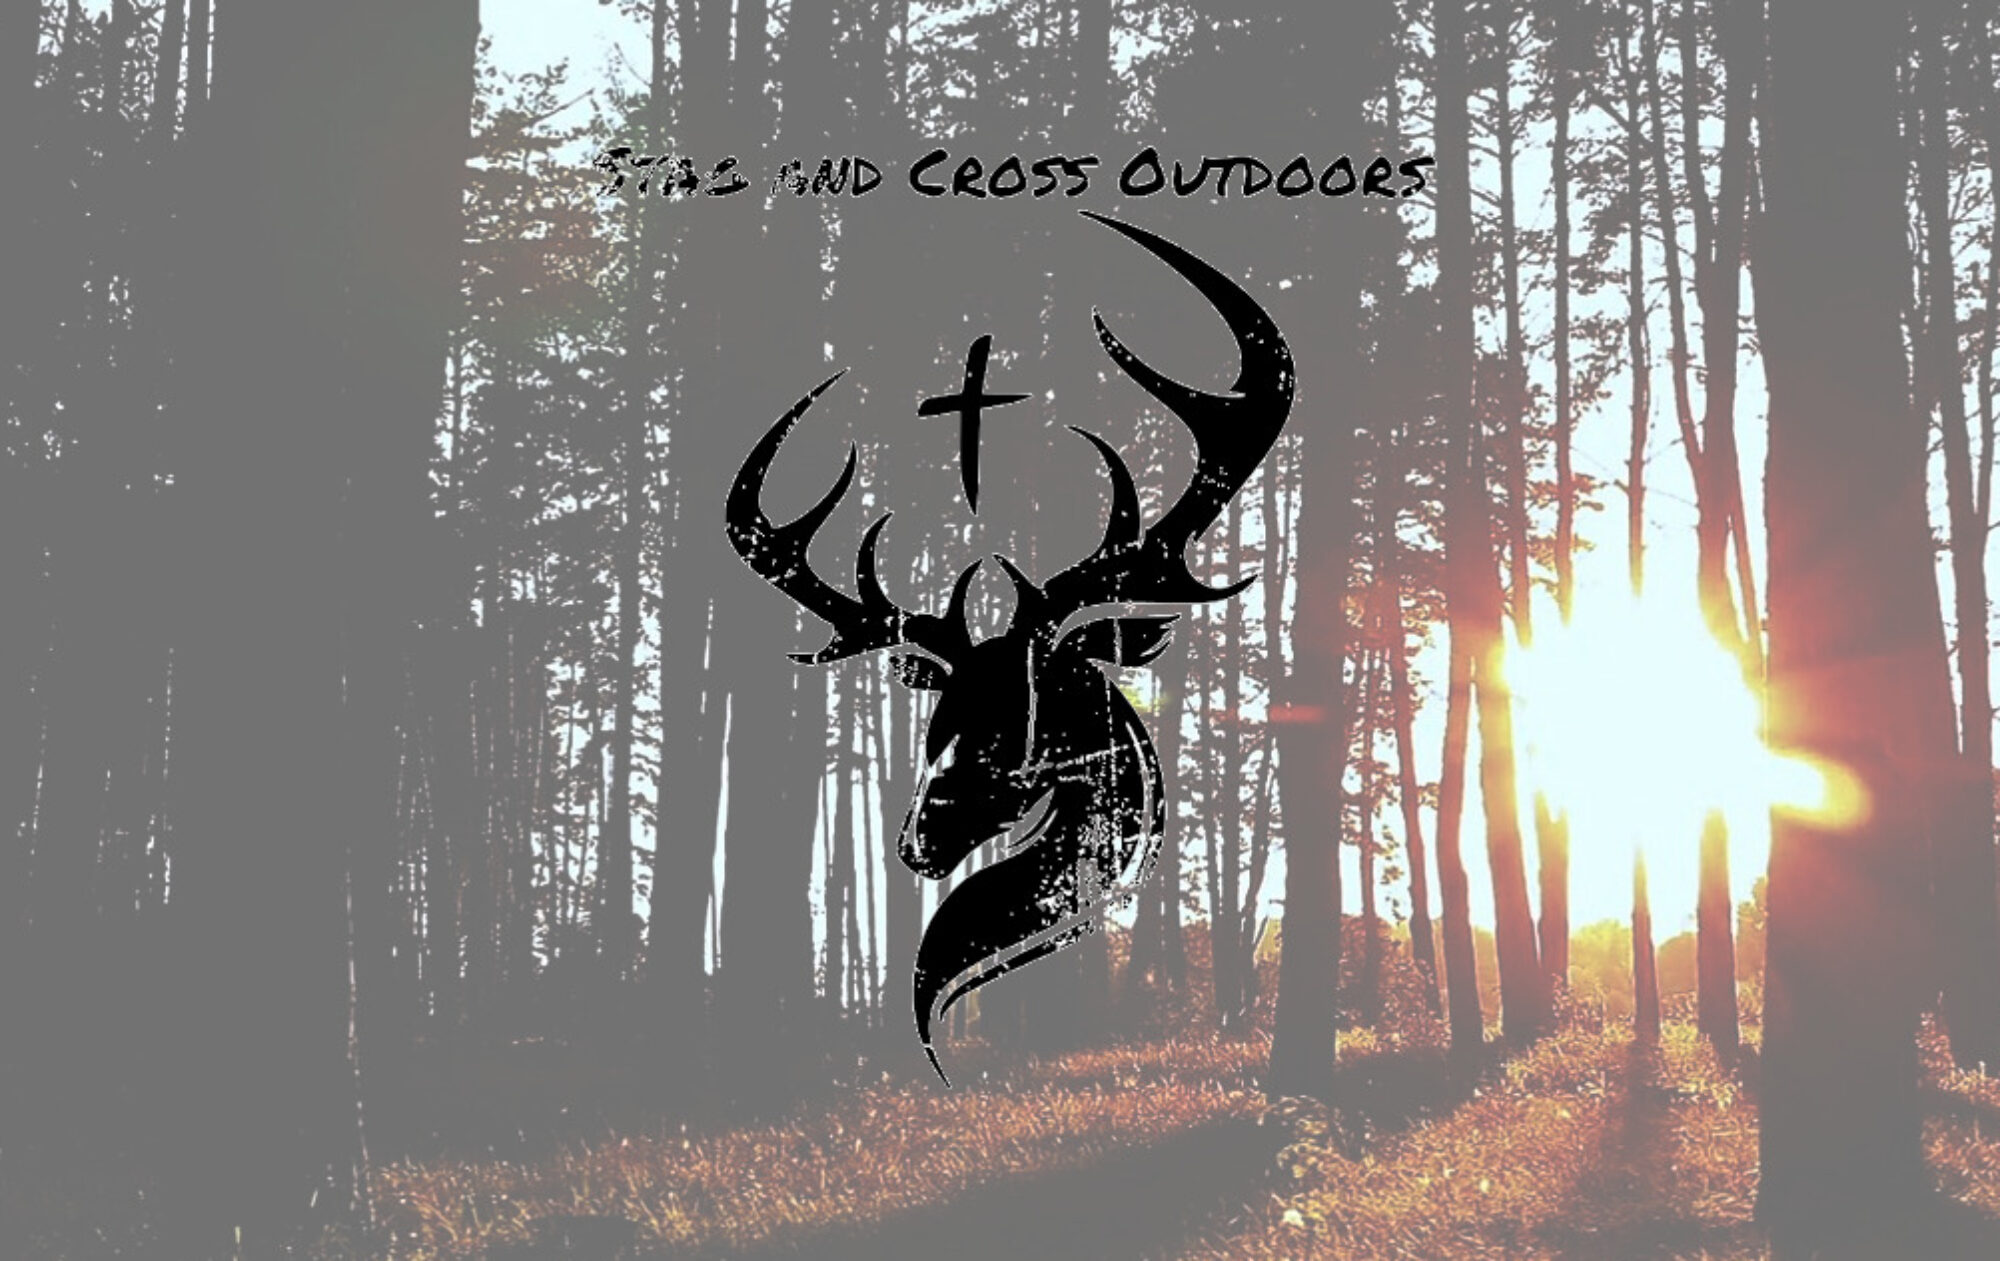 Stag and Cross Outdoors